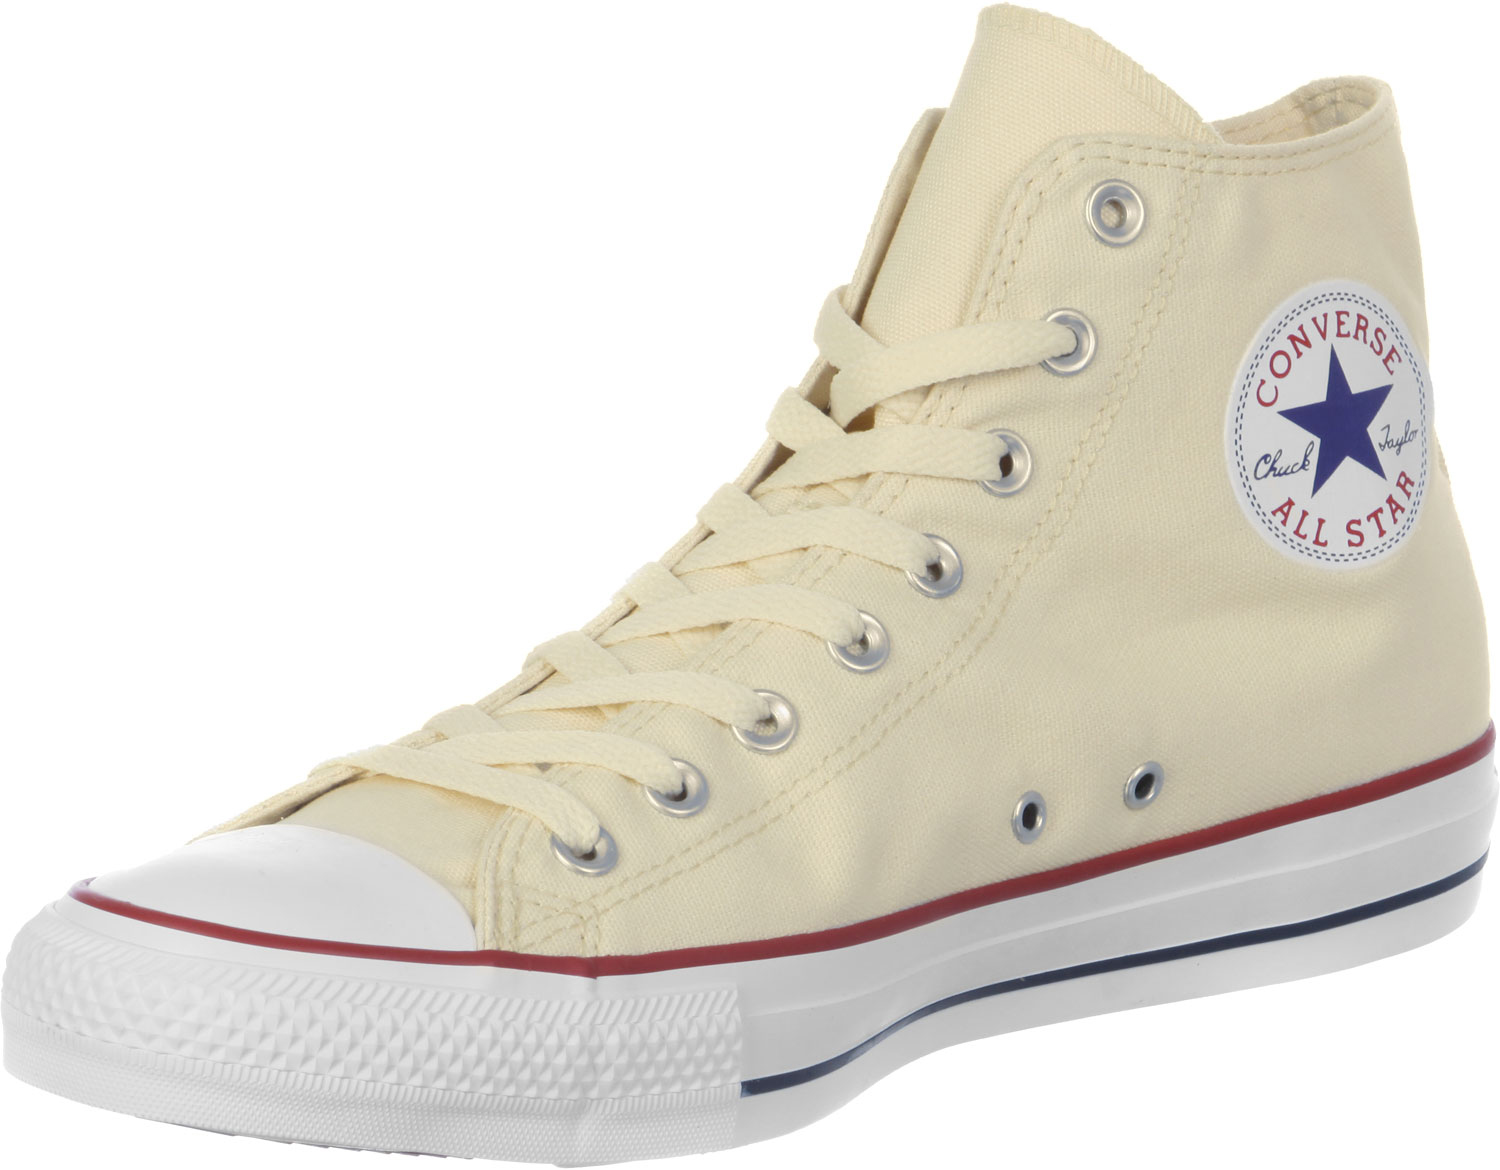 best sneakers 9fd6c 11bb9 Scarpe Converse All Star Chuck Taylor Beige